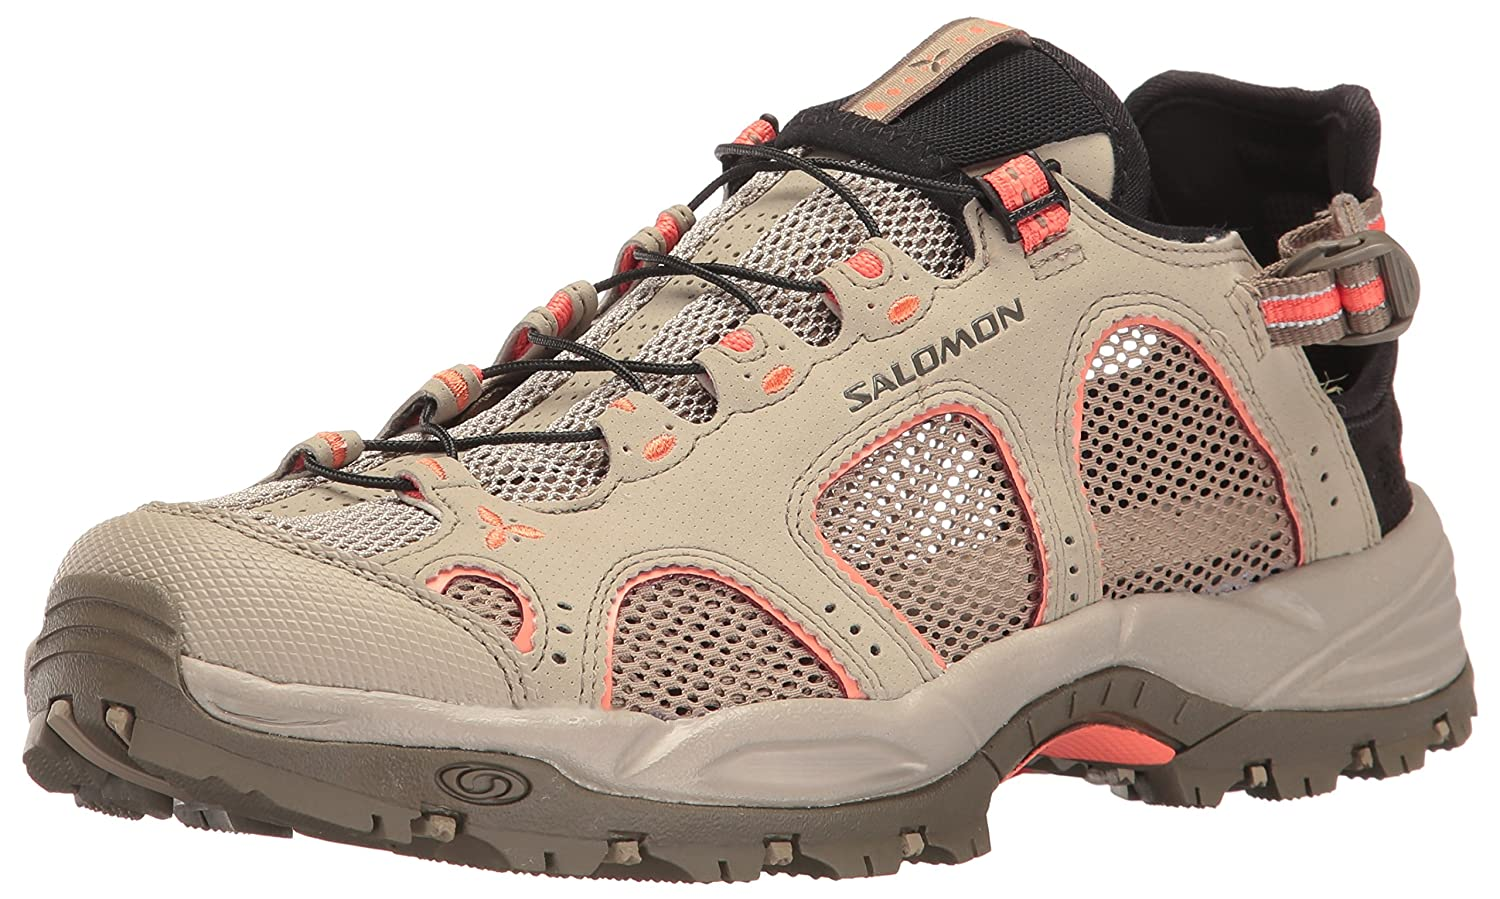 Salomon Women's Techamphibian 3 W Trail Running Shoe B01HD2RG3Q 8 B(M) US|Vintage Kaki